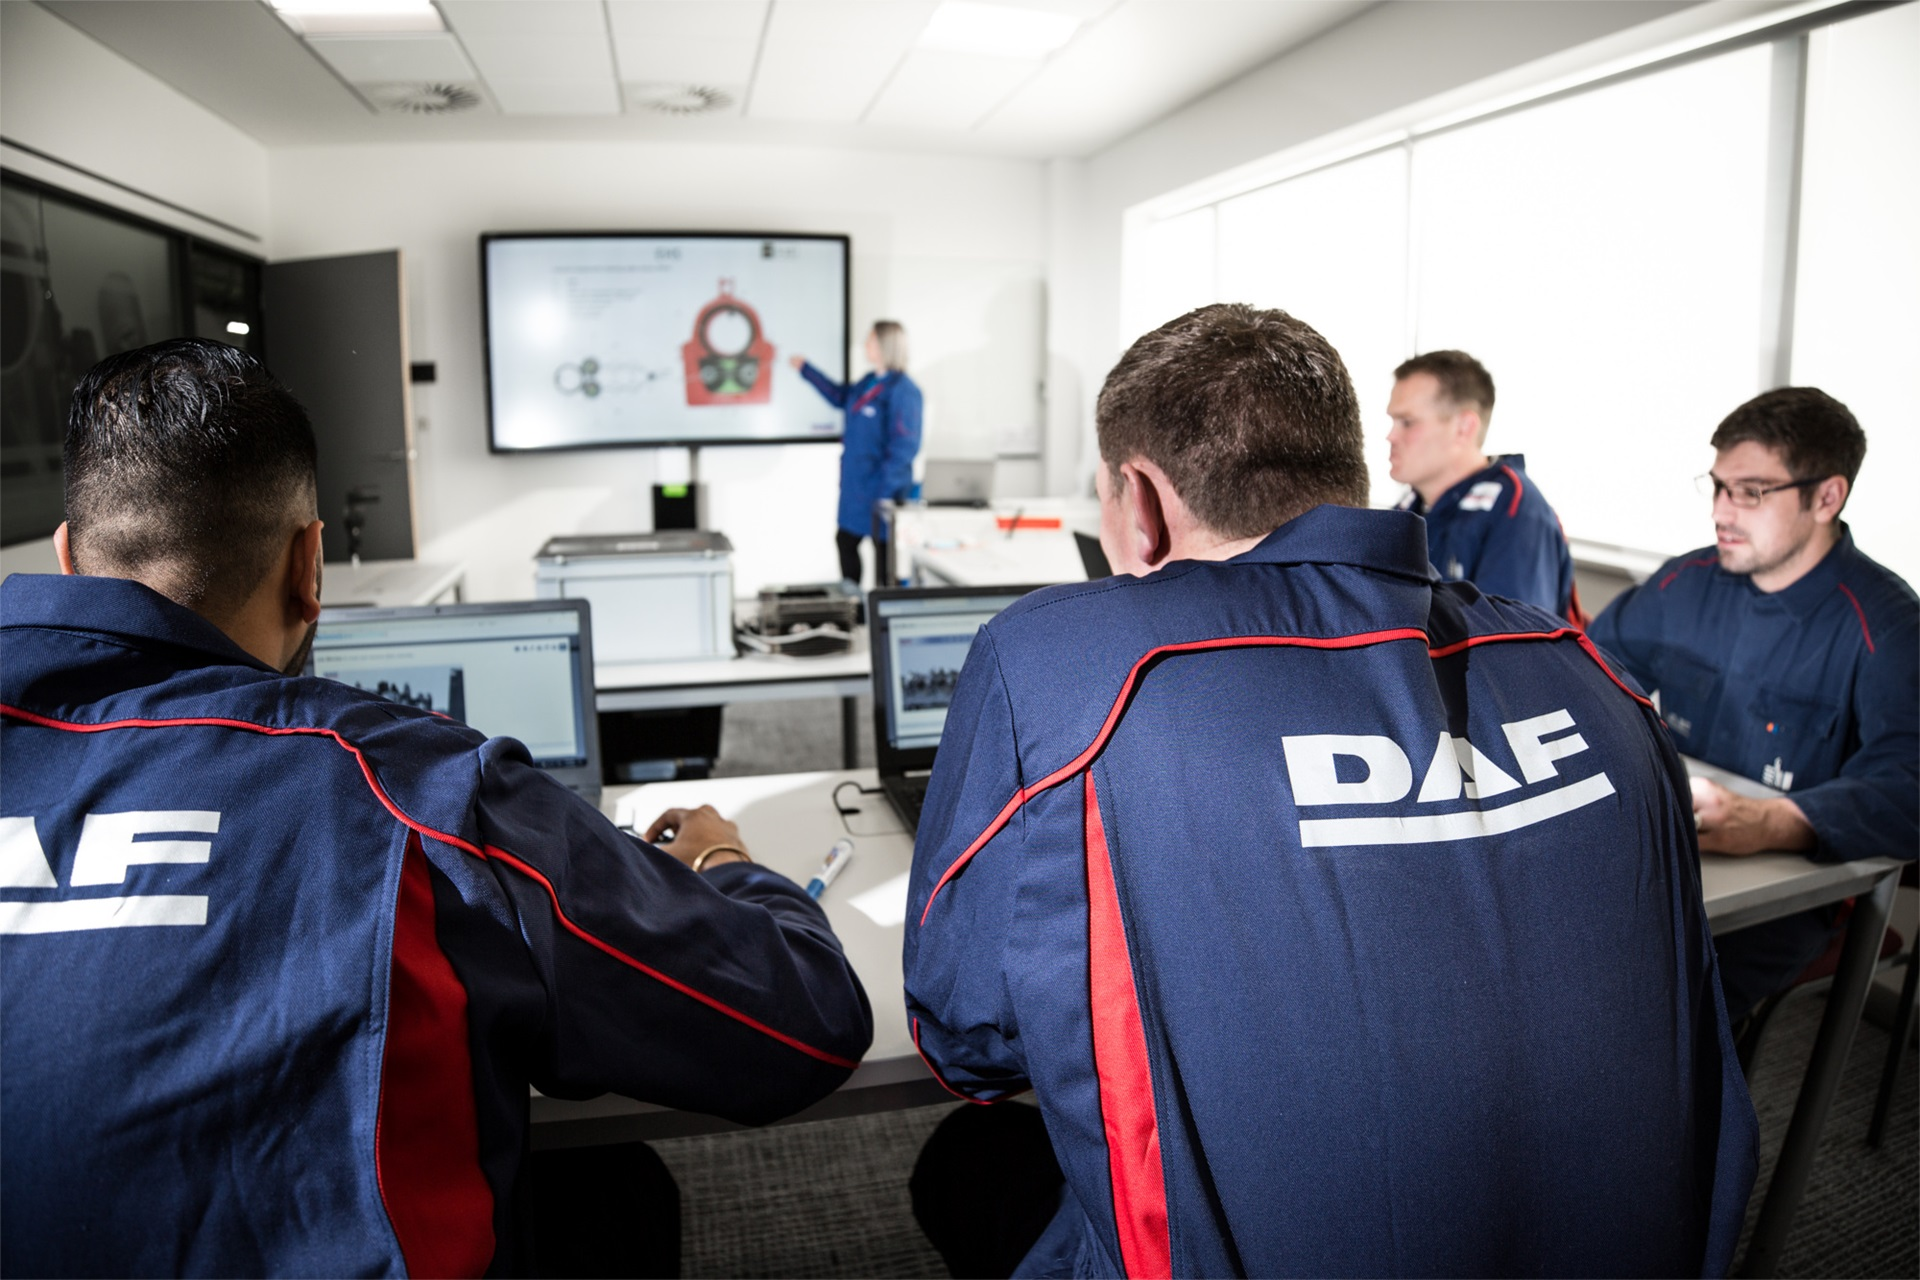 DAF-Technician-Training-Video-Title